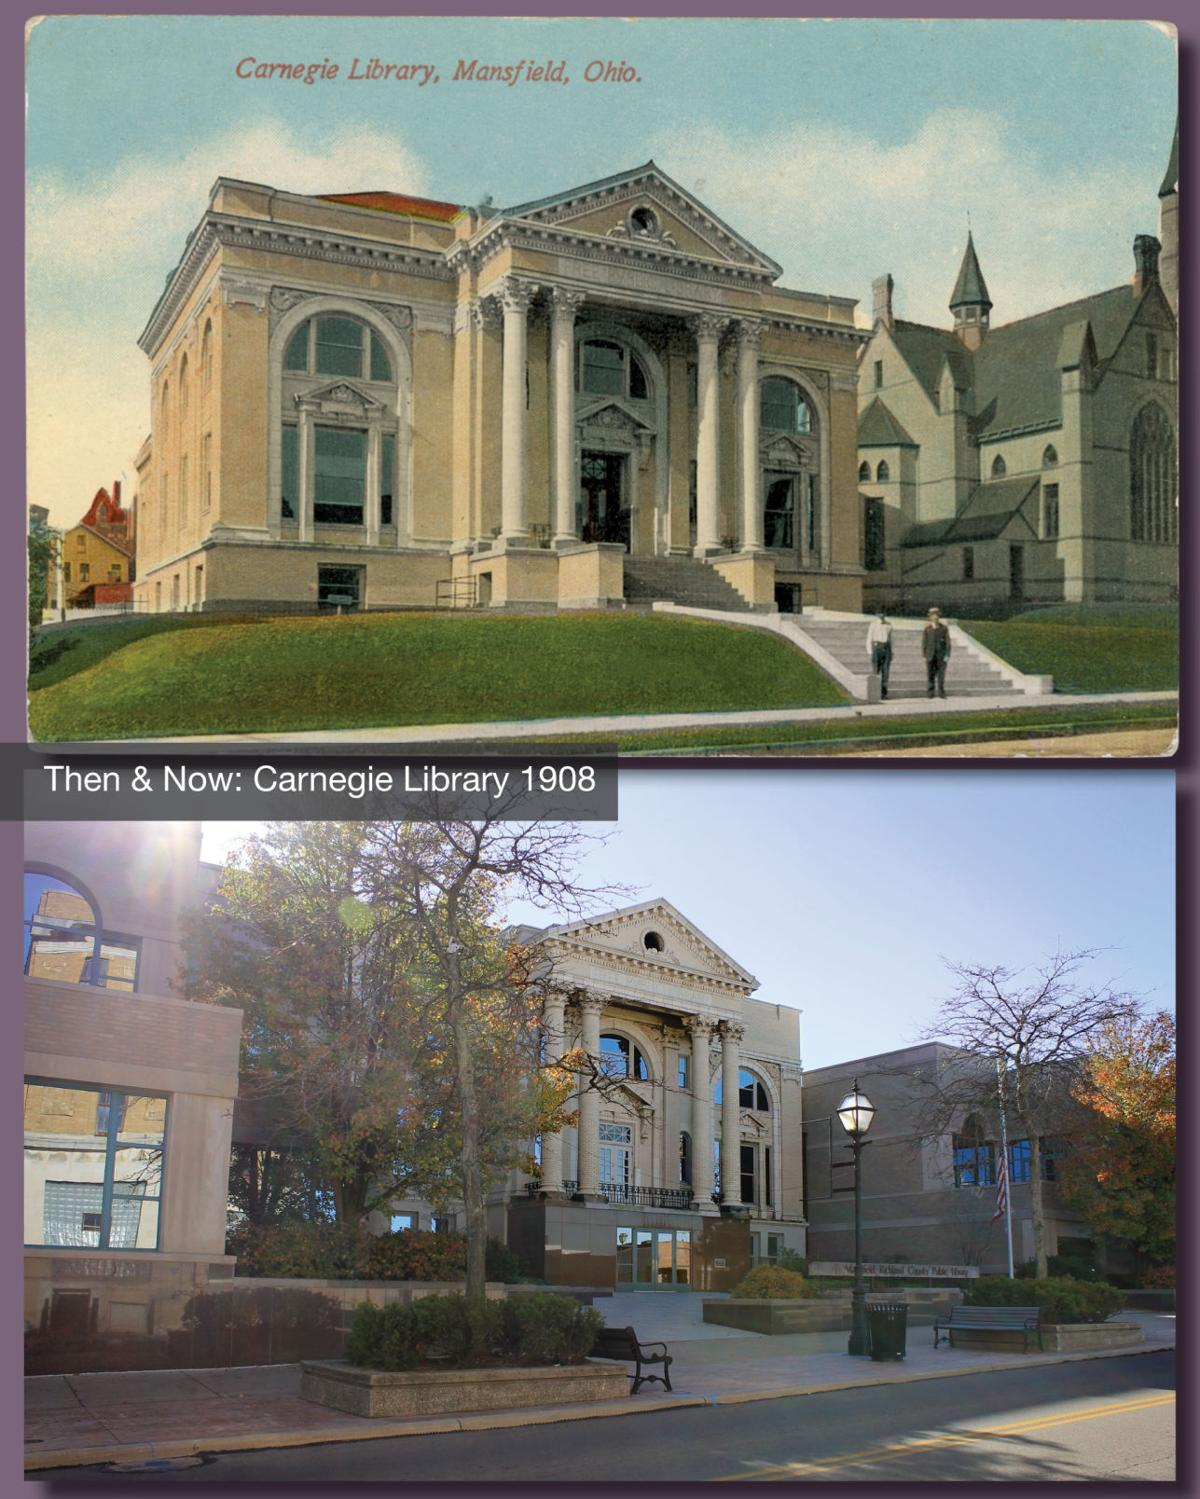 Then & Now: Mansfield Carnegie Library 1908